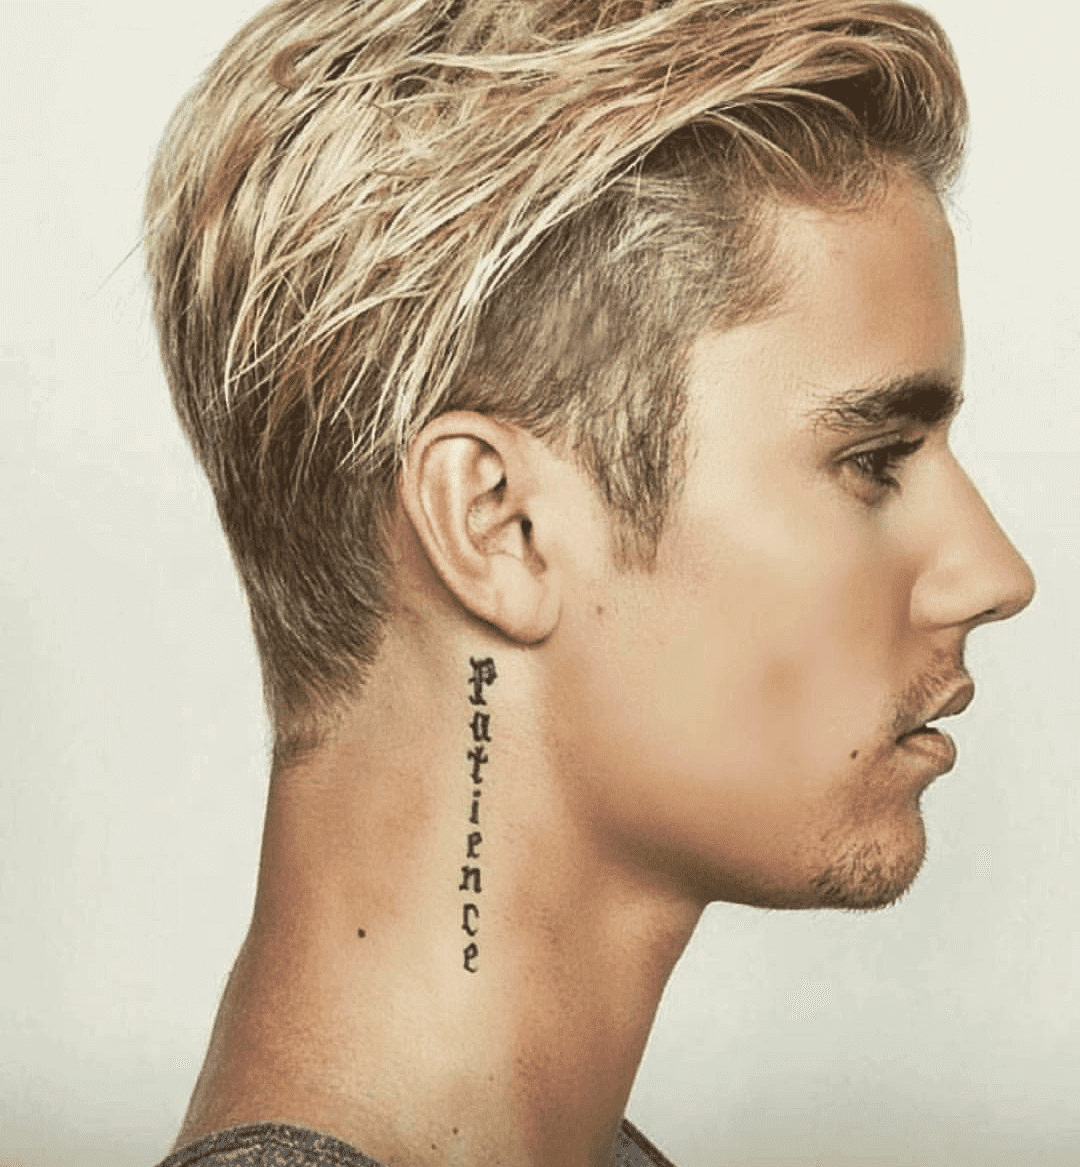 justin bieber patience tattoo